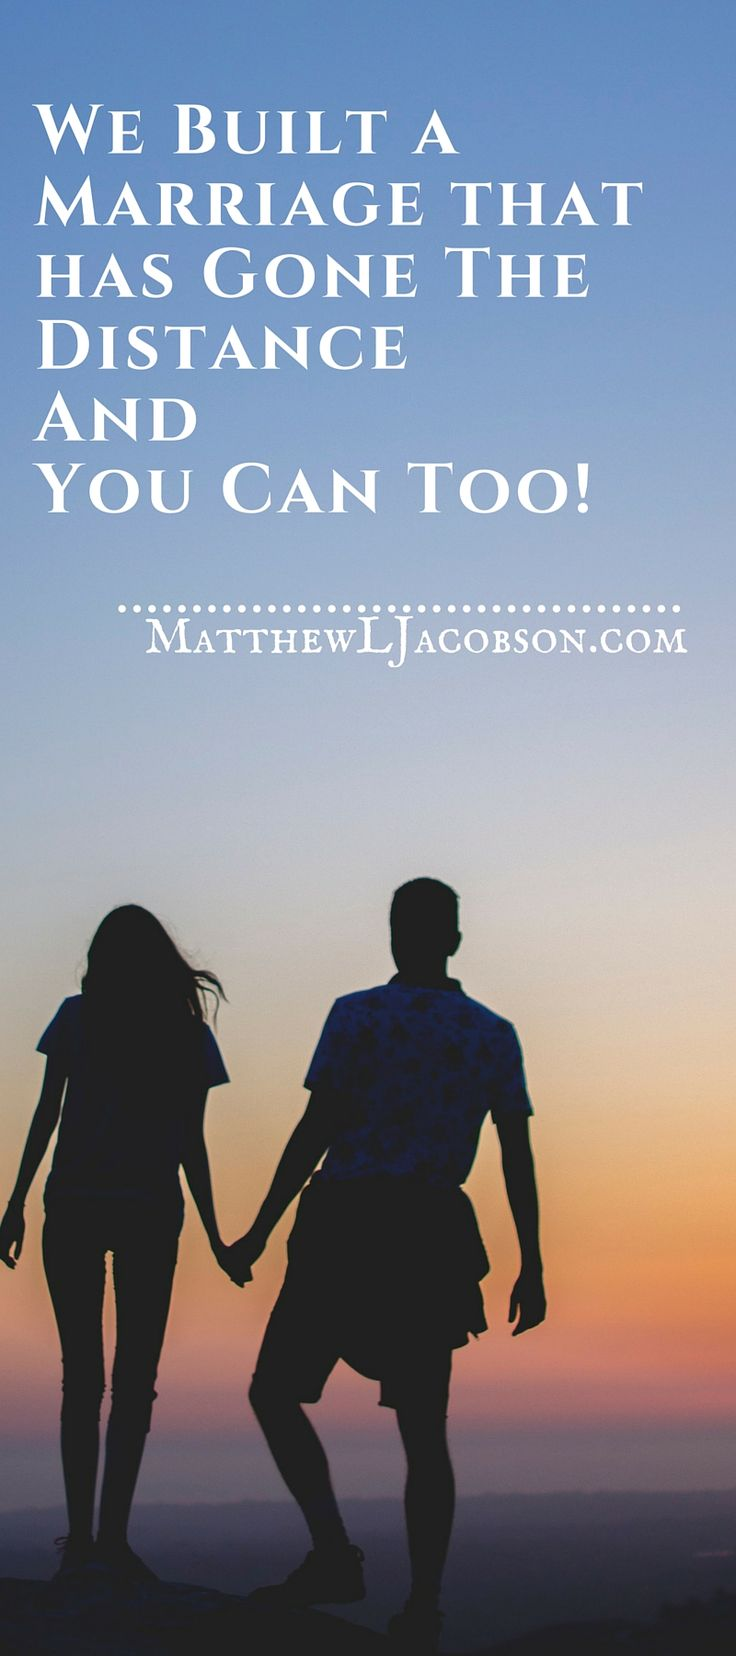 Marriage statistics aren't very encouraging but that's okay because having a strong, healthy, loving marriage is possible for any willing couple. Get your marriage on a solid foundation today.